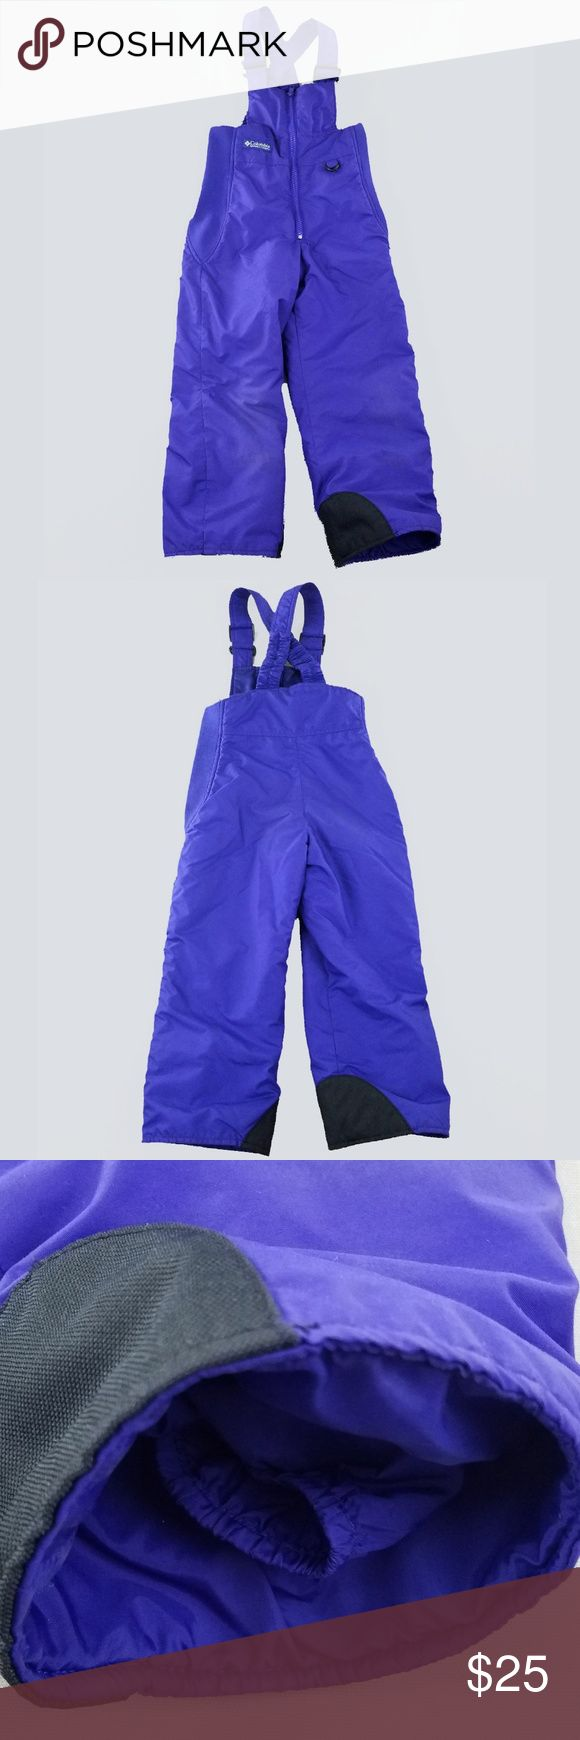 """Columbia Girls Snow Bibs 4 5 Snowpants Overalls Columbia Girls Snow Bibs 4 5 Snowpants Overalls Purple  Seam to seam across chest: 11.5"""" Inseam: 16.5"""" Top of shoulder to bottom (length): 38""""  Very good condition with mild knee wear Columbia Bottoms Overalls"""